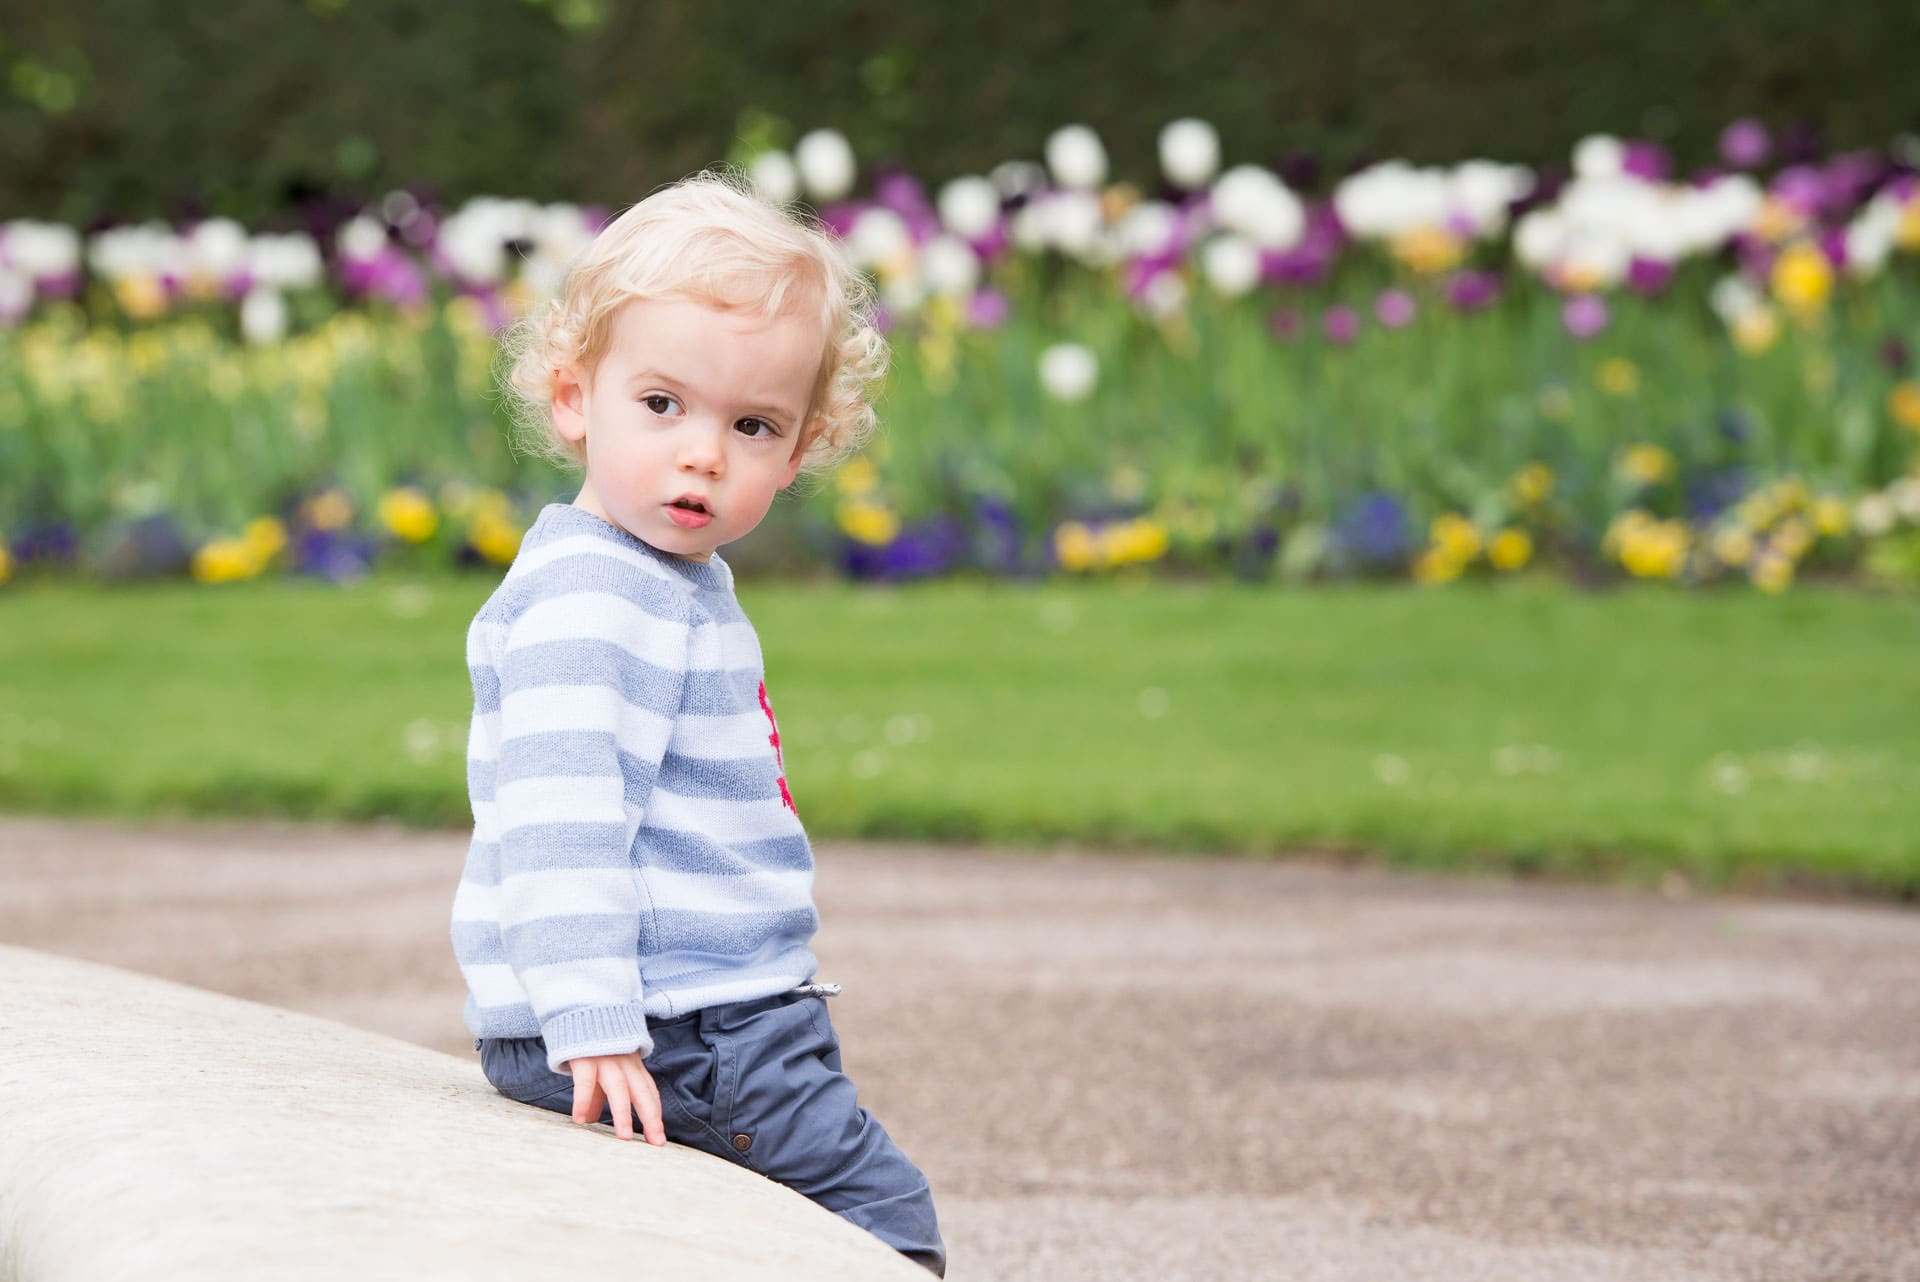 Young boy sitting on a wall, tulips behind him